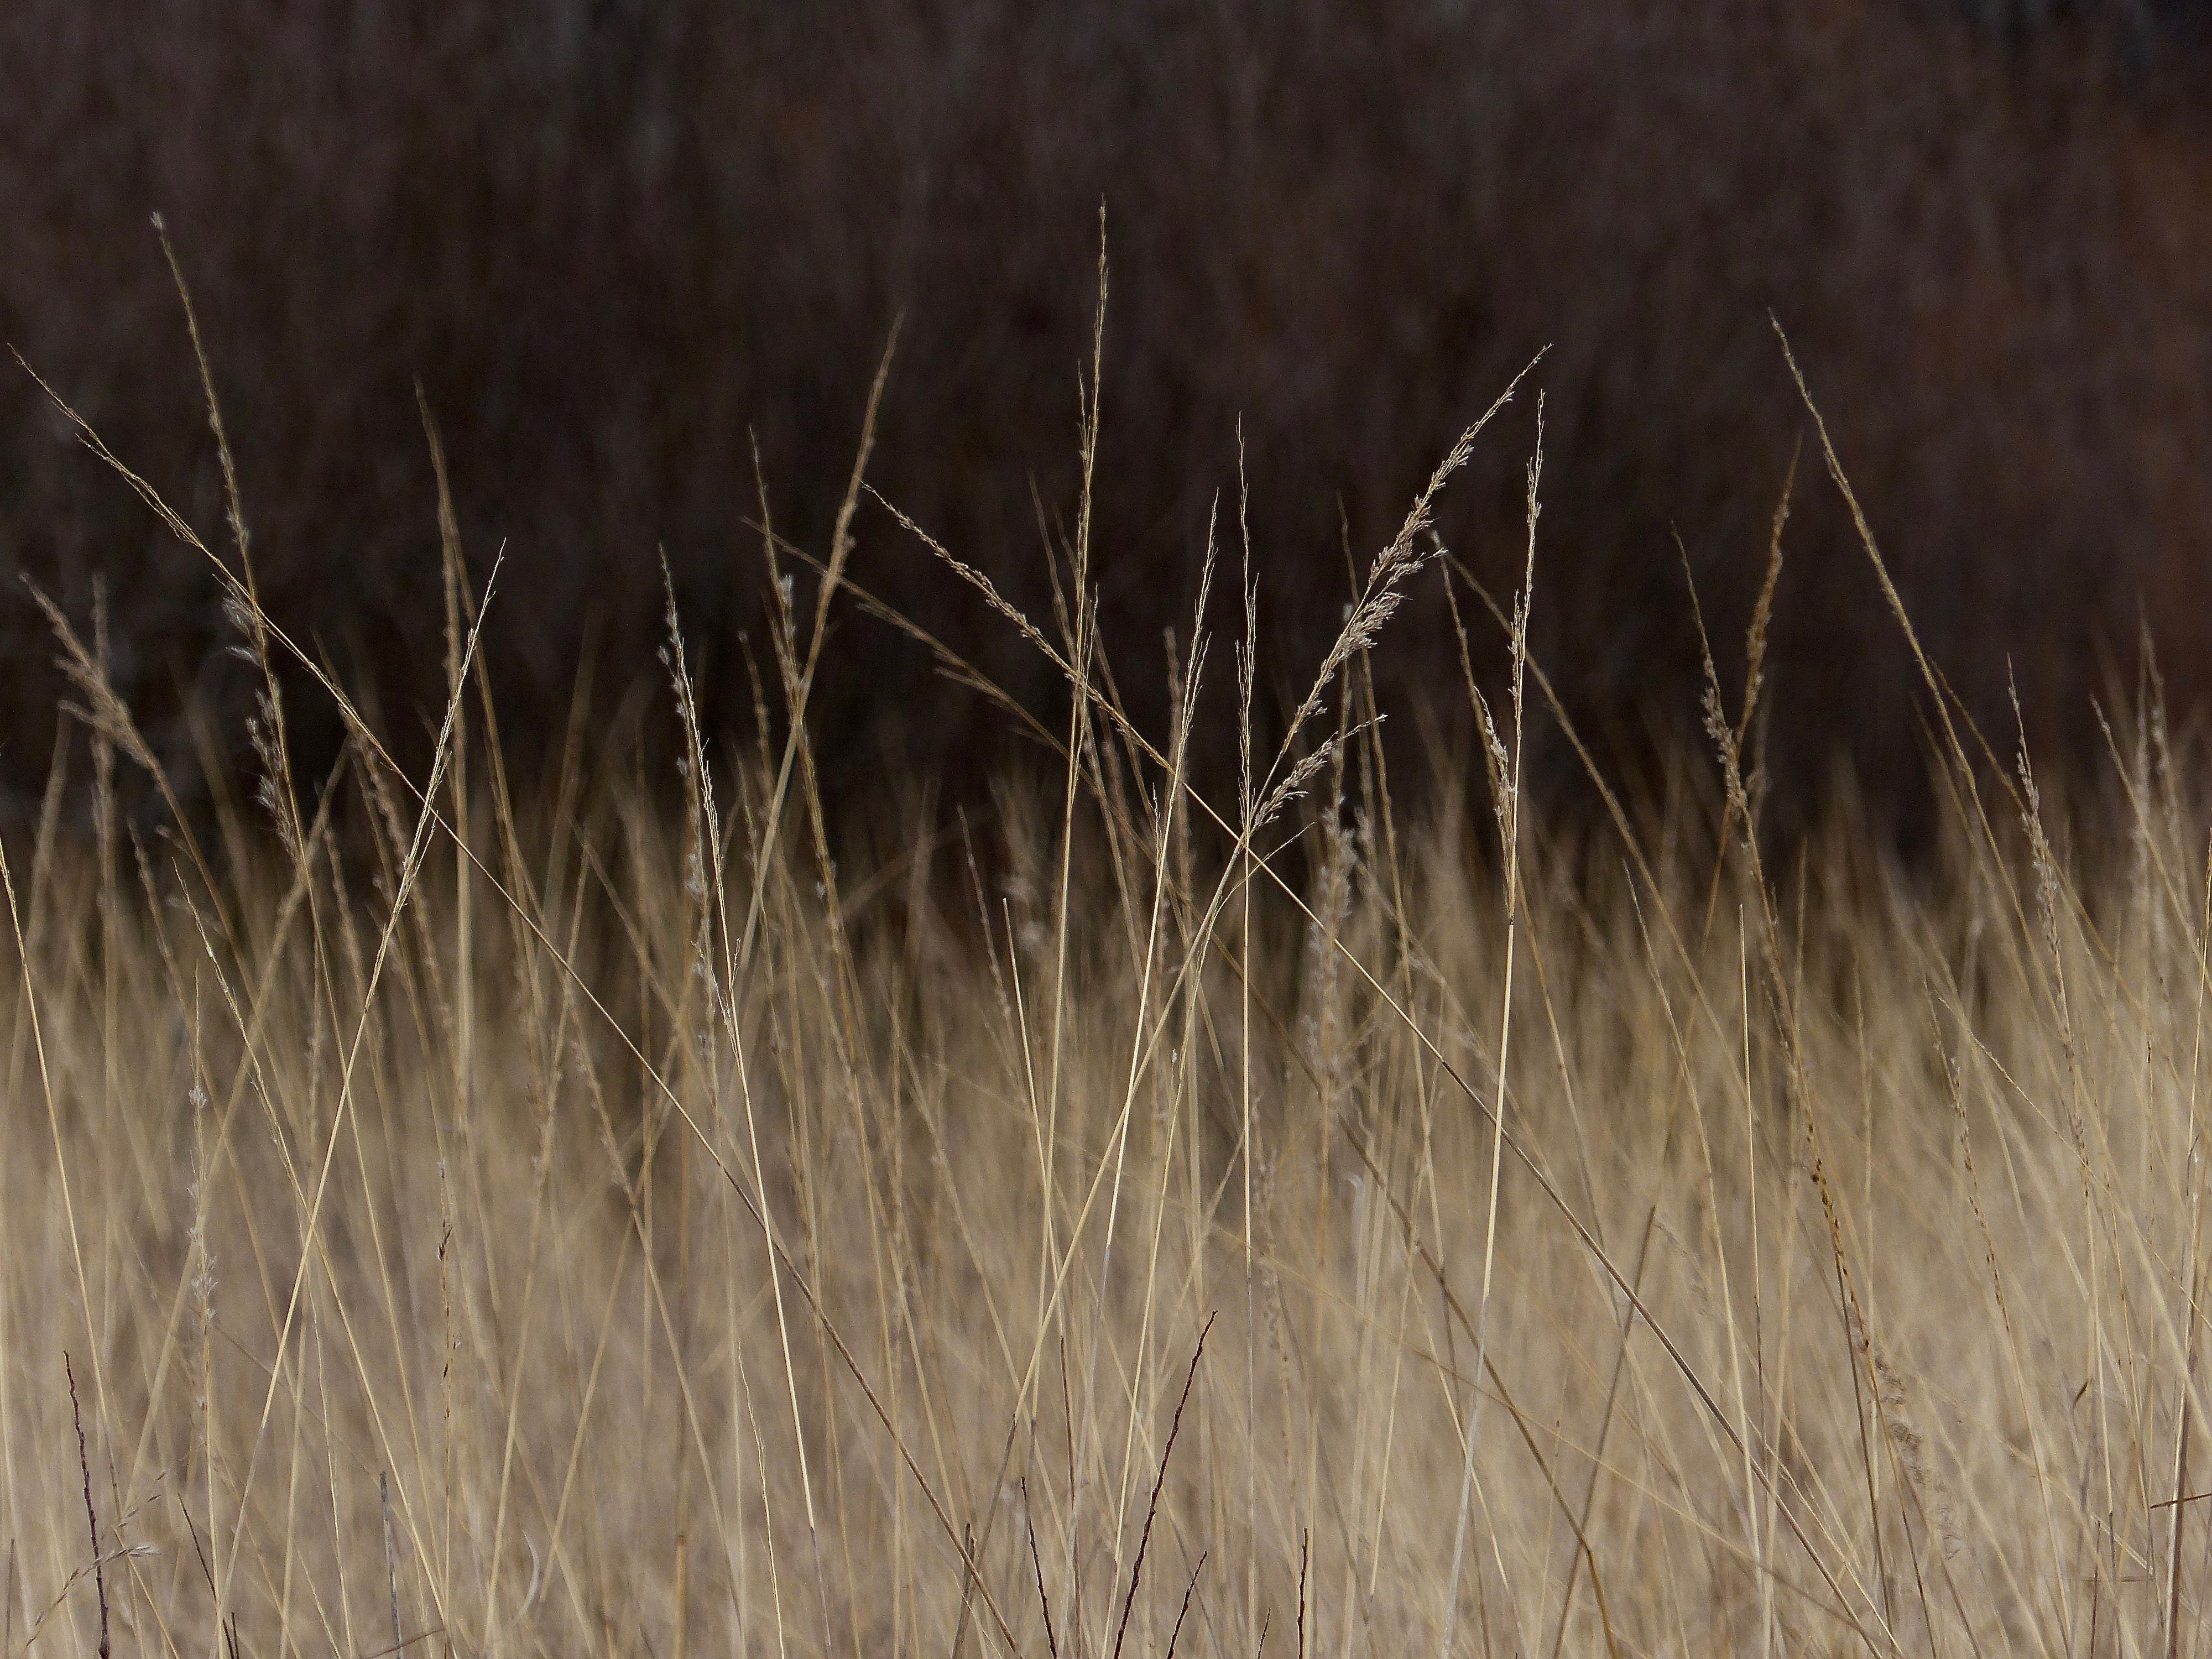 Timber Ridge Forest Preserve Indian Grass 217.jpg